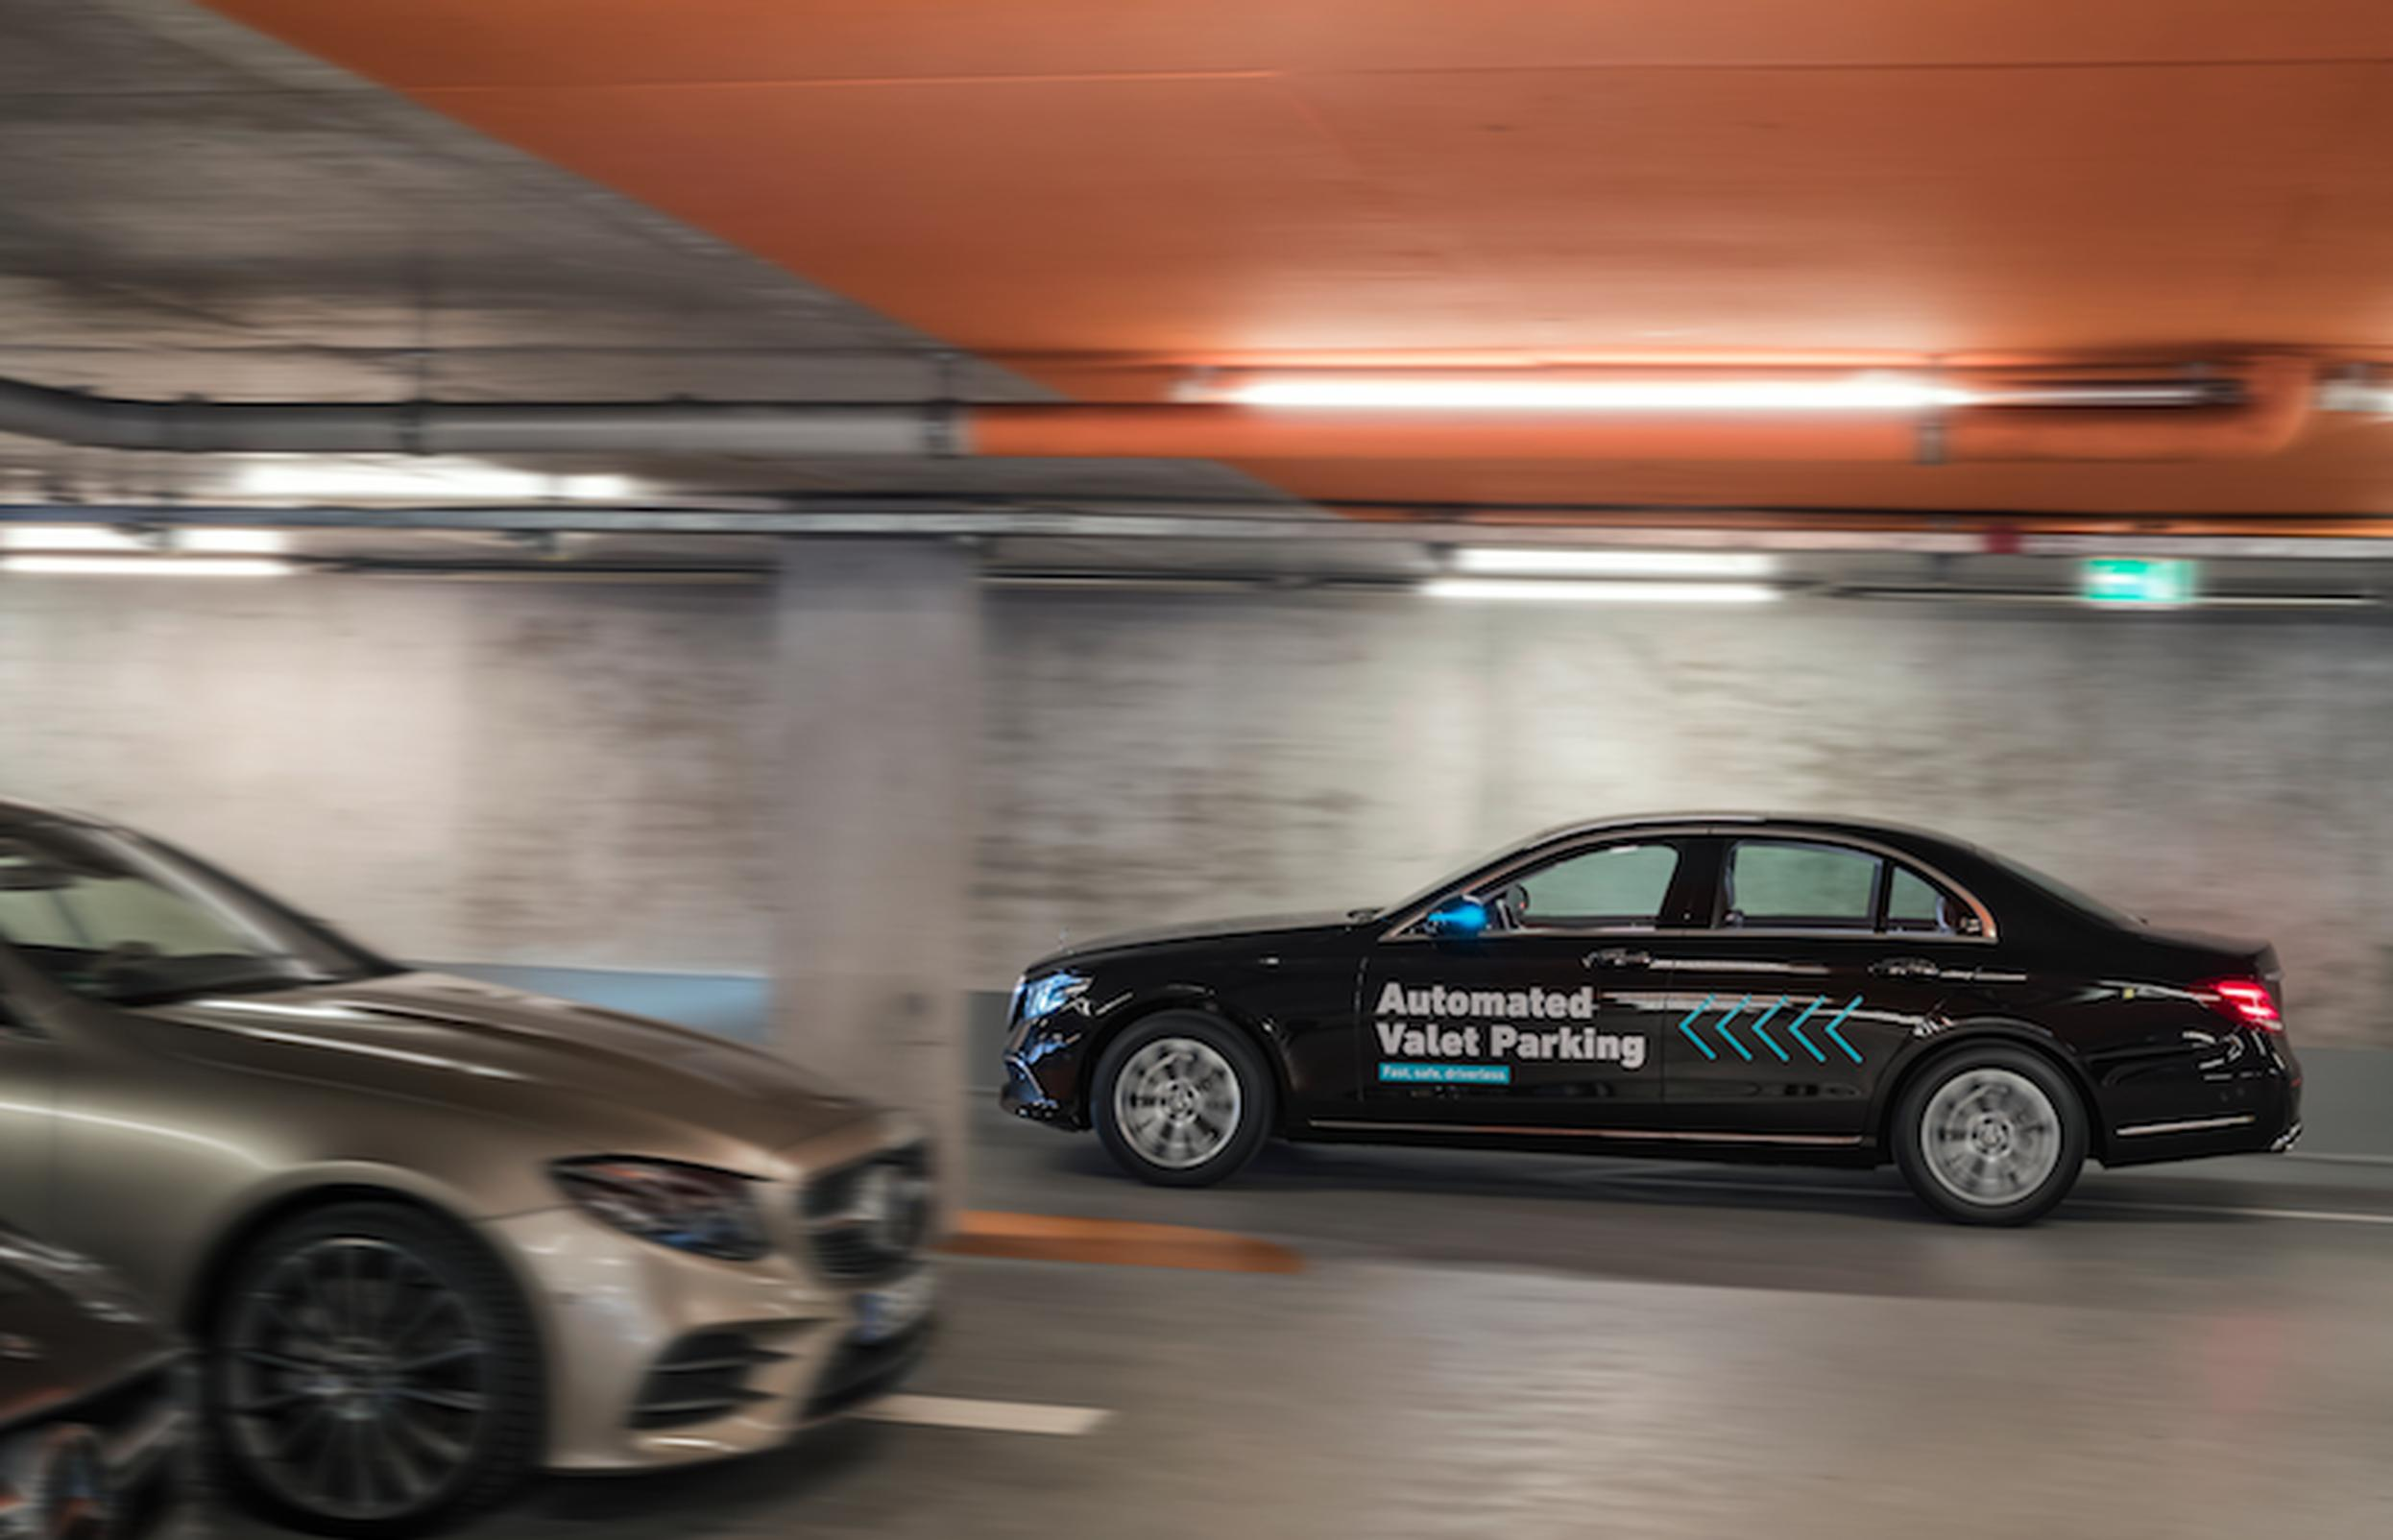 A saloon driving in the Mercedes-Benz Museum car park using sensors